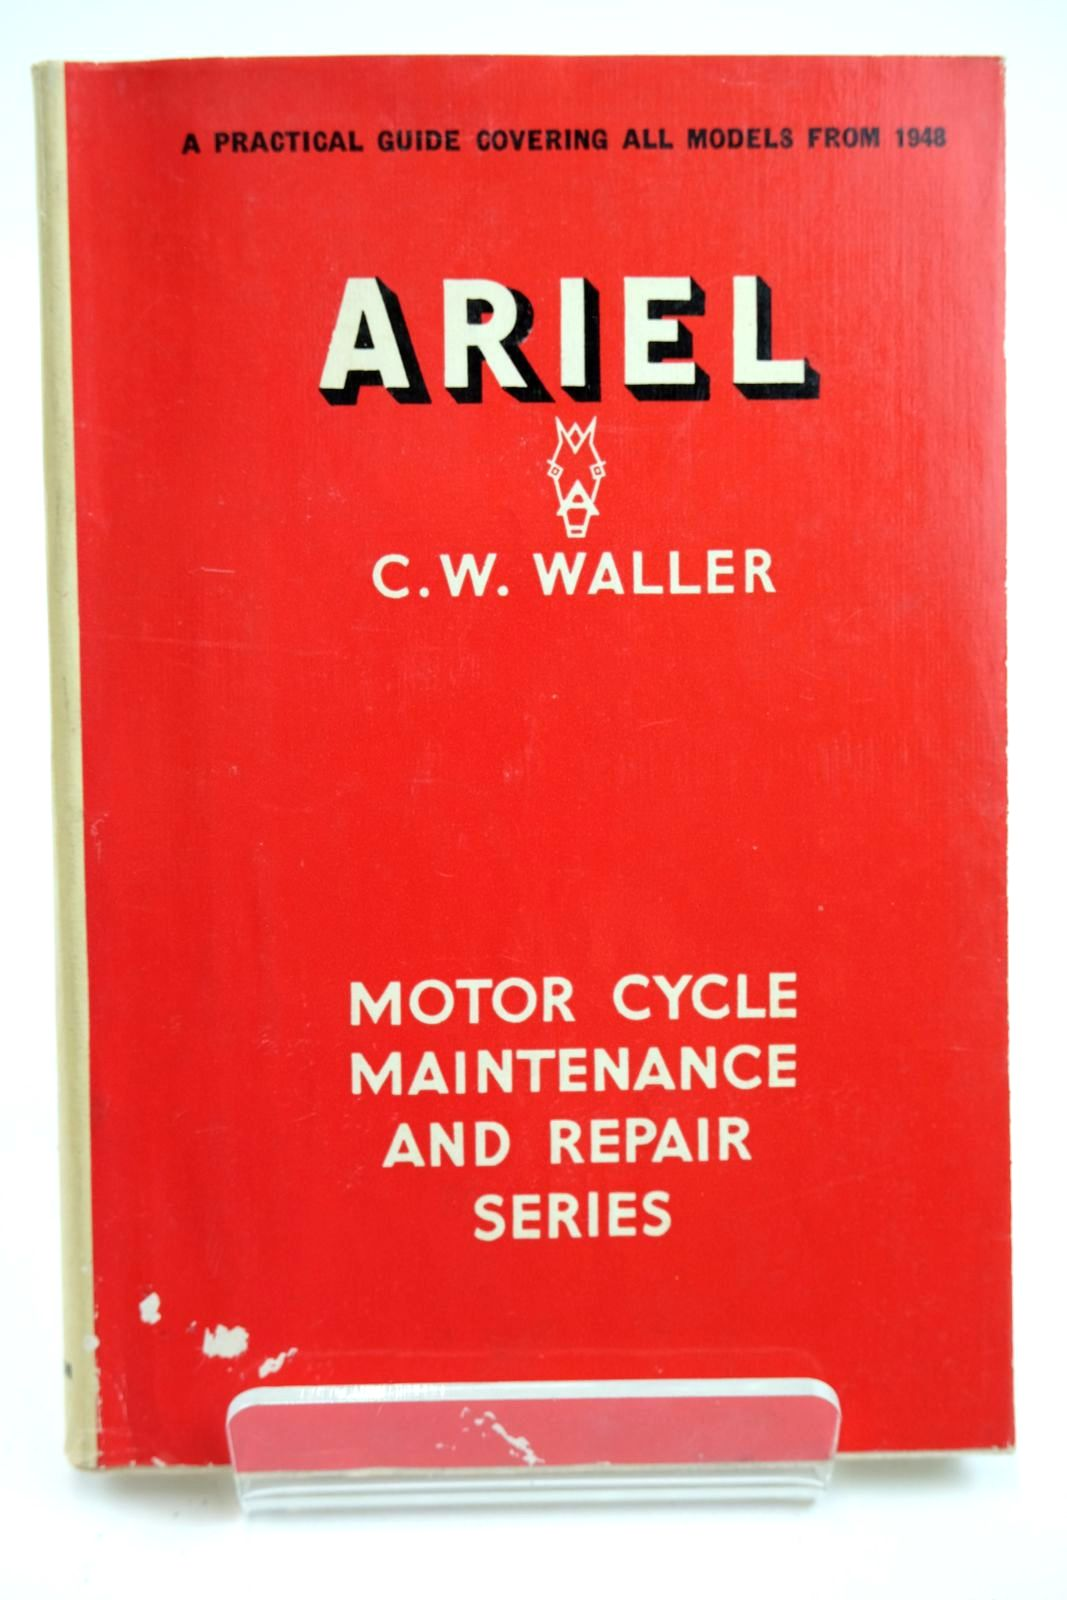 Photo of ARIEL MOTOR CYCLES written by Waller, C.W. published by C. Arthur Pearson Ltd. (STOCK CODE: 2132301)  for sale by Stella & Rose's Books